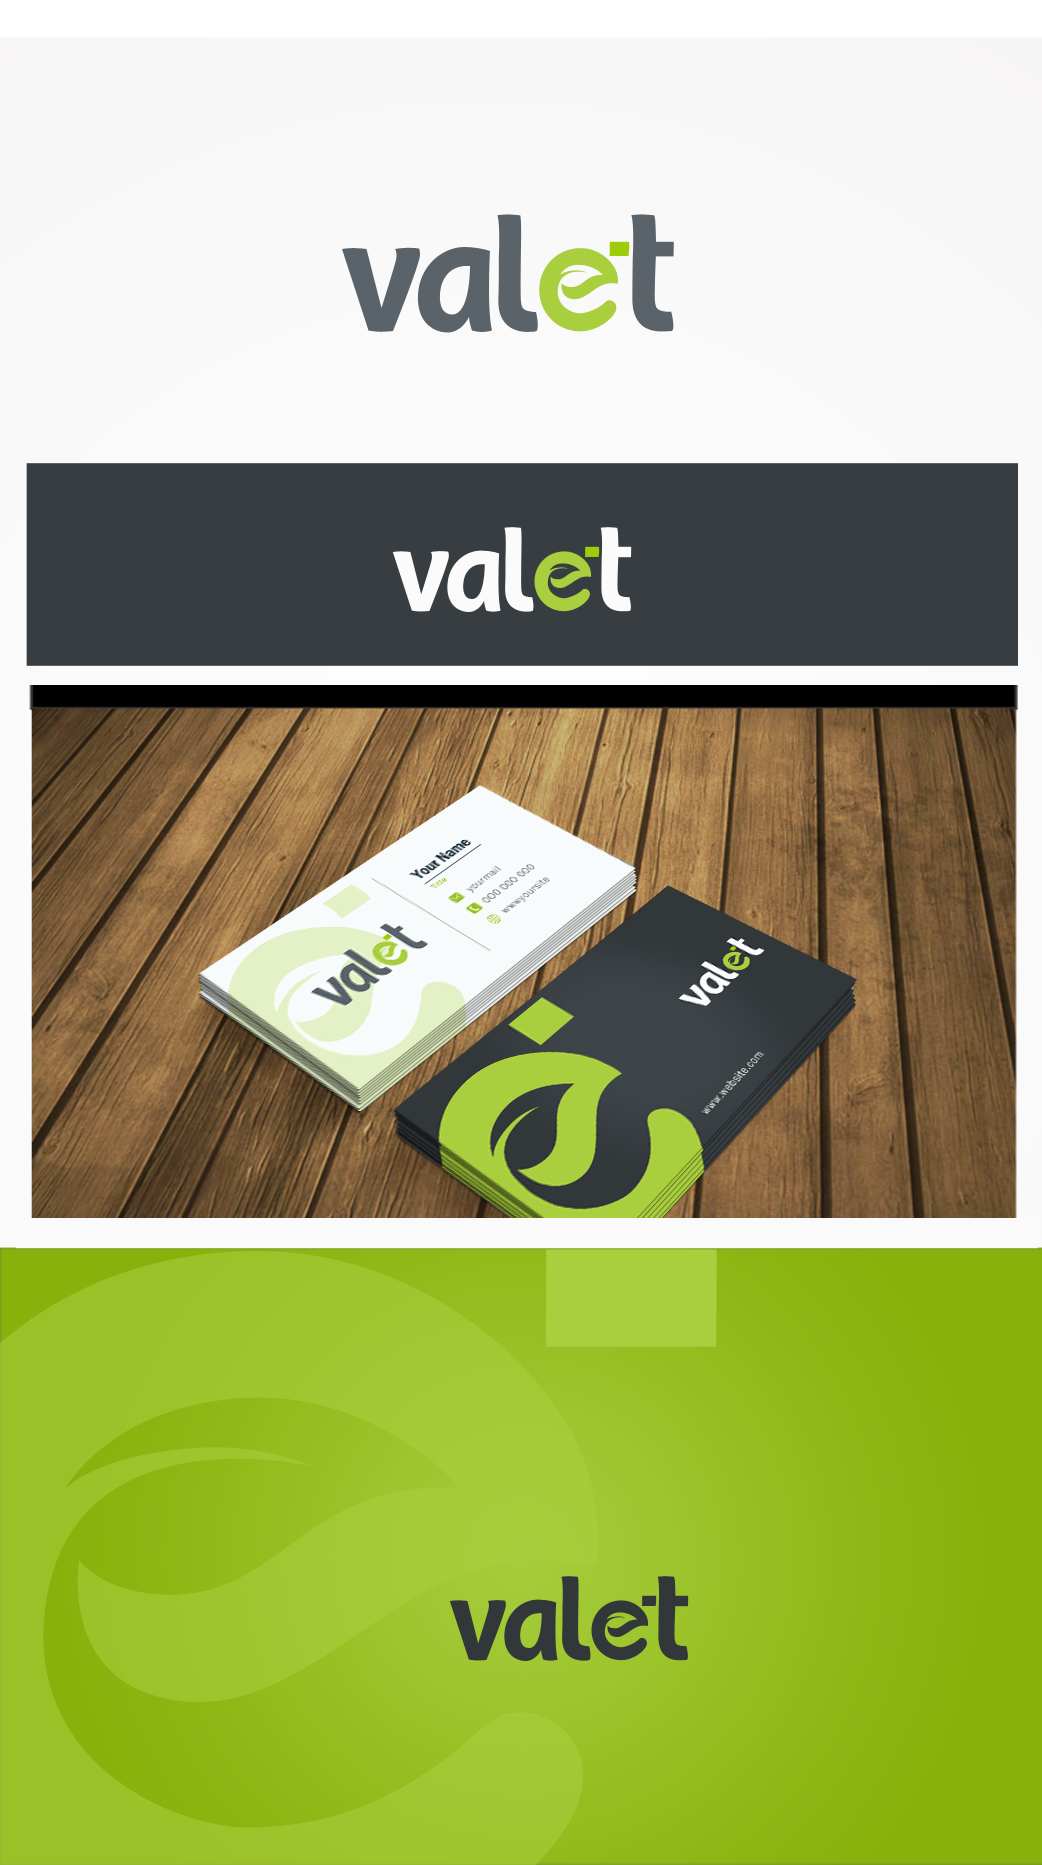 Create a simple, elegant logo for a Clean Technology company.